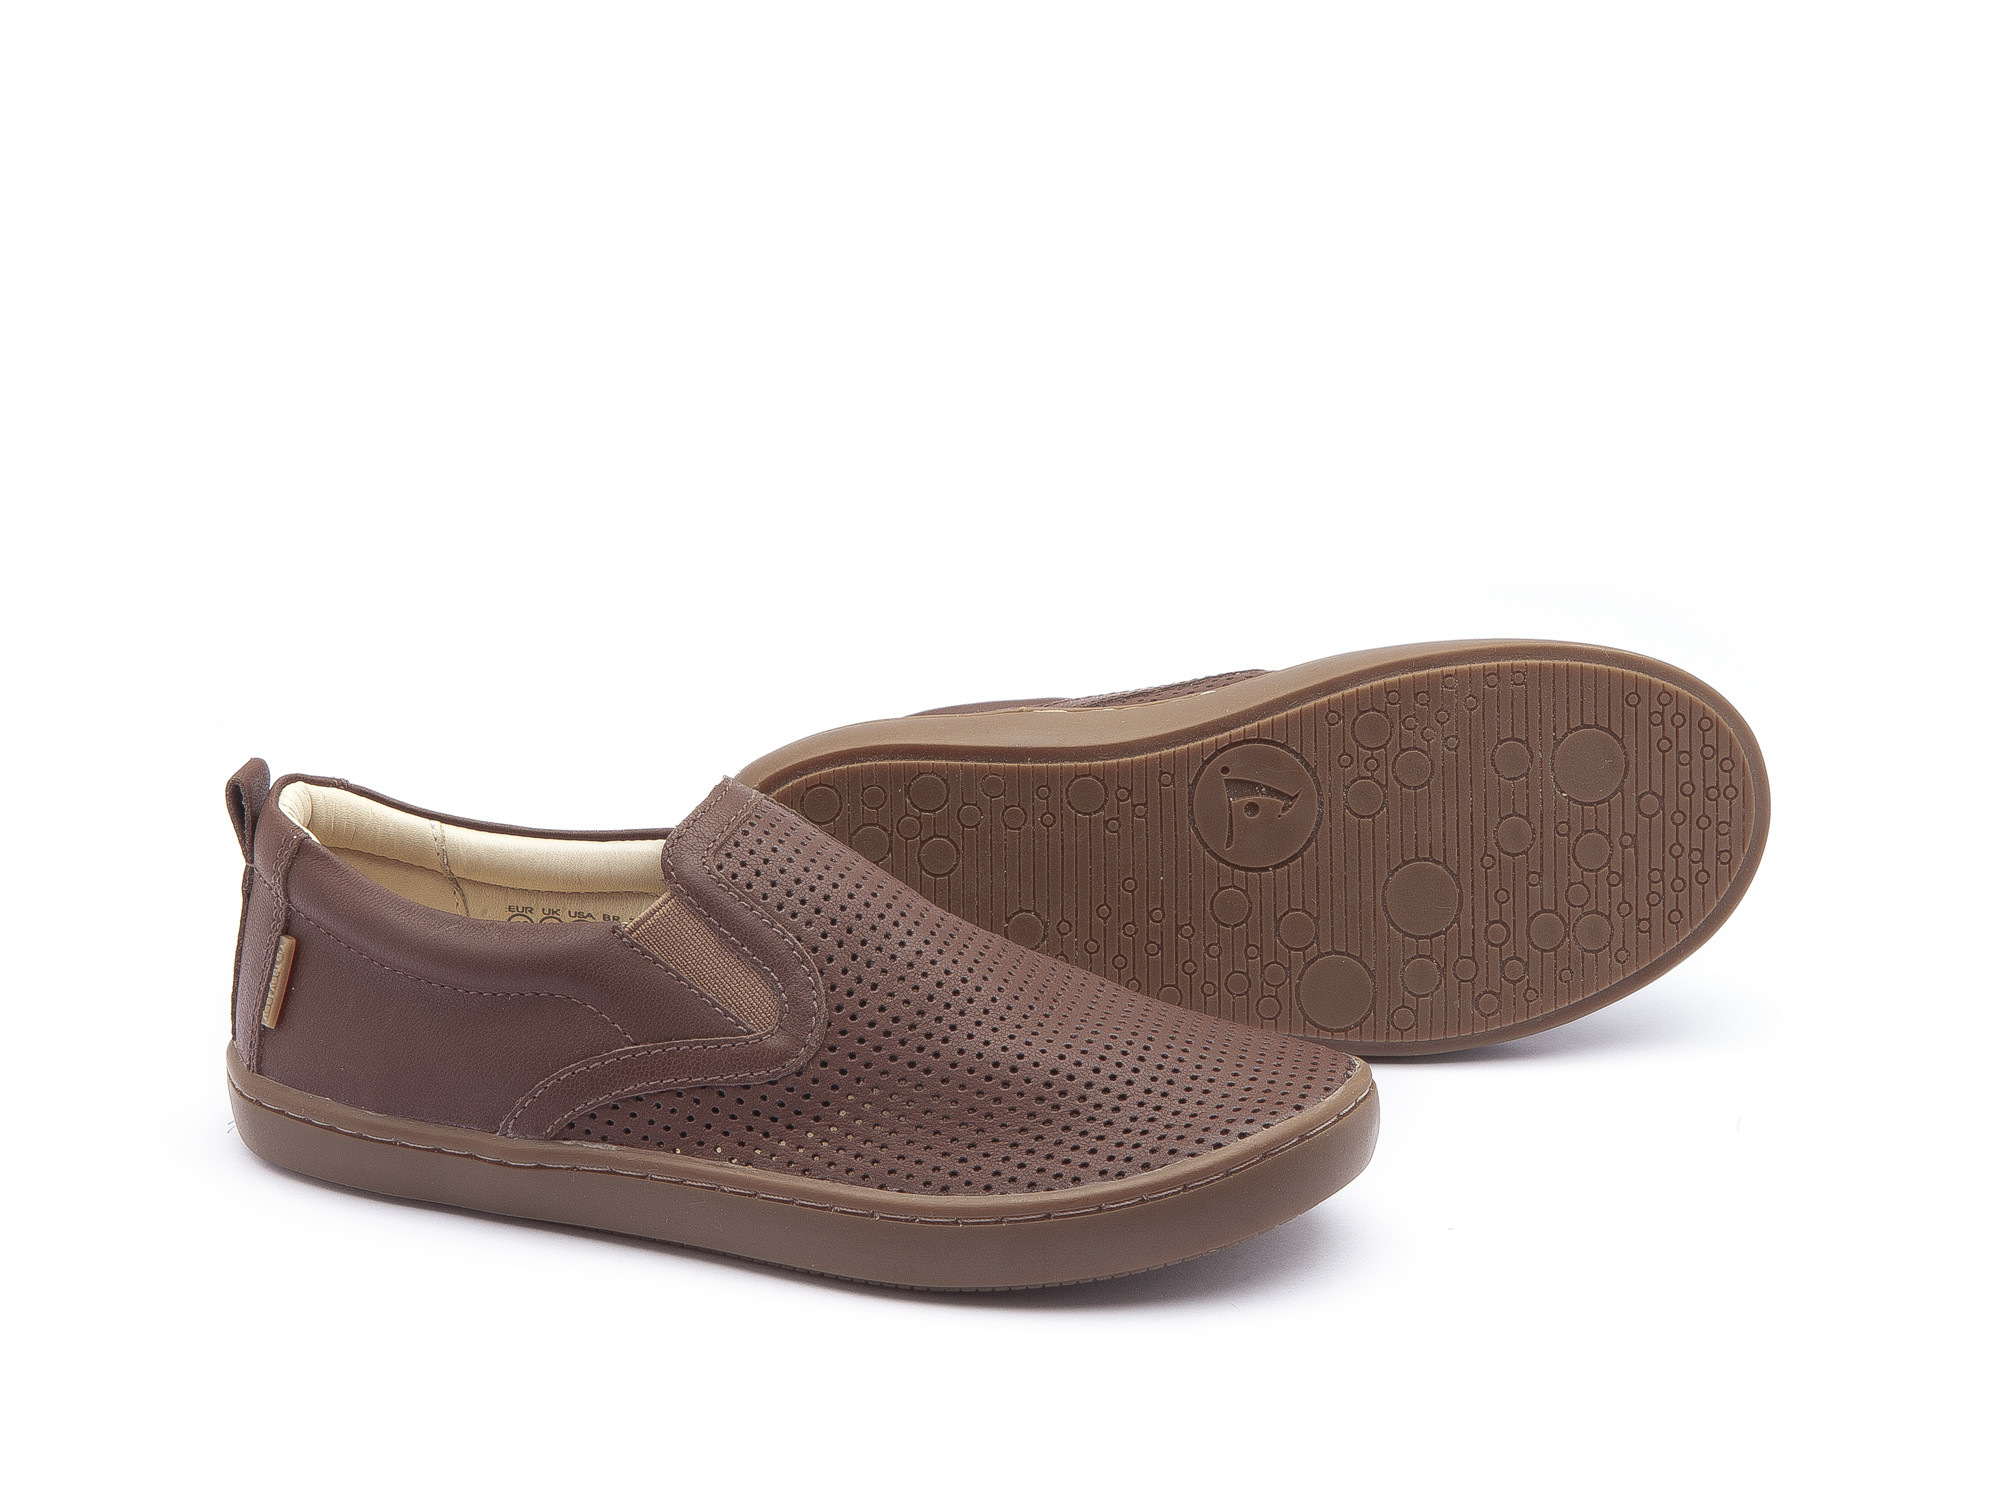 Sneaker Casual Straw Old Brown Holes/ Old Brown Junior 4 à 8 anos - 1